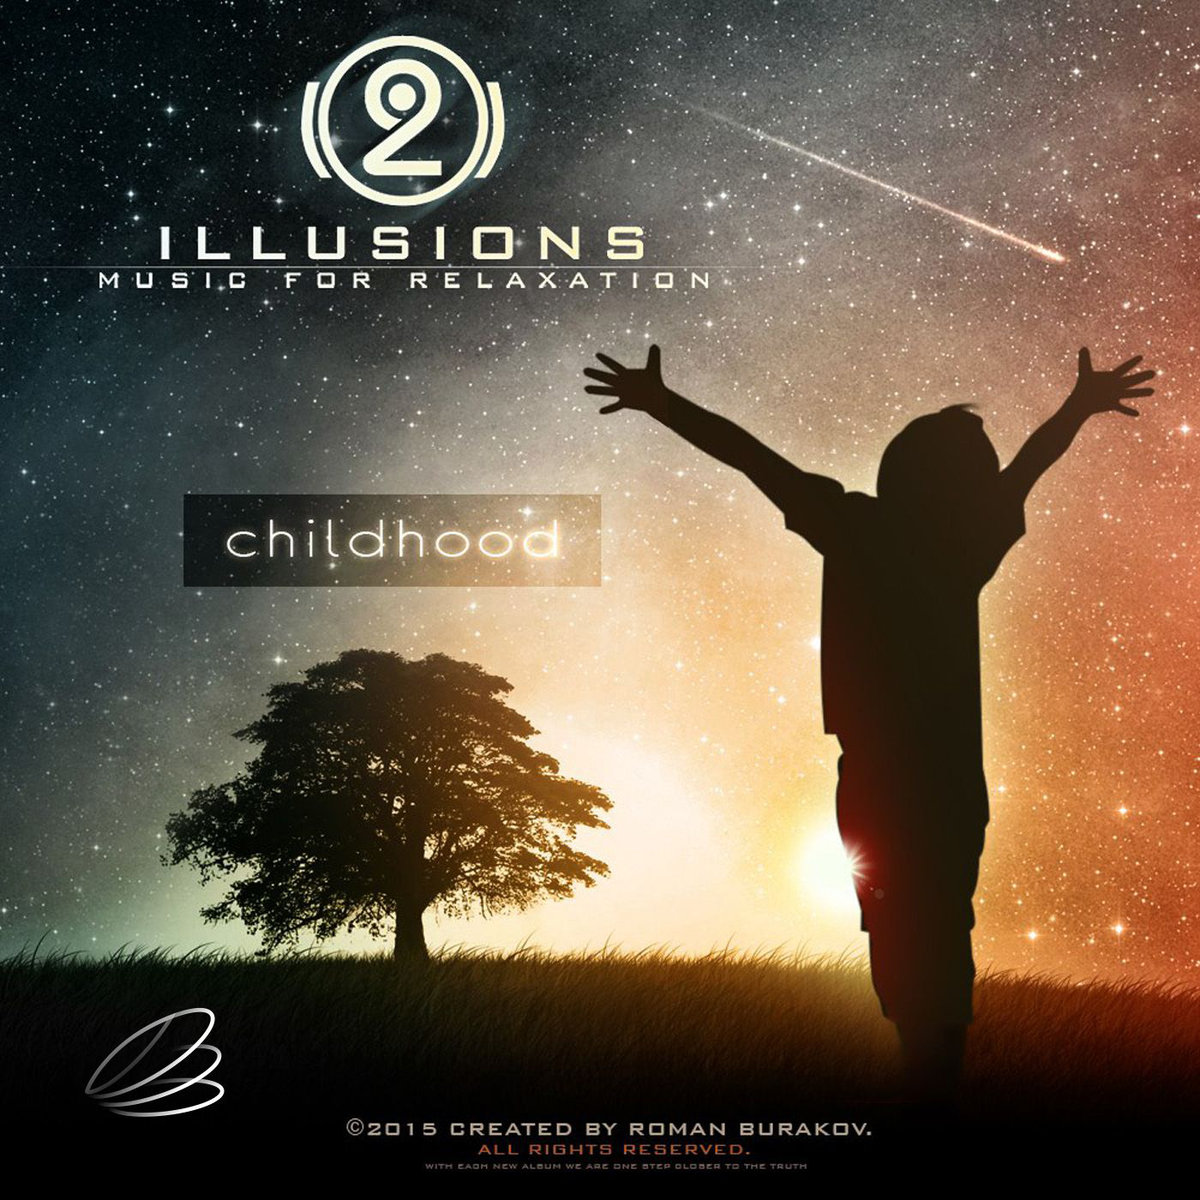 2illusions - Childhood